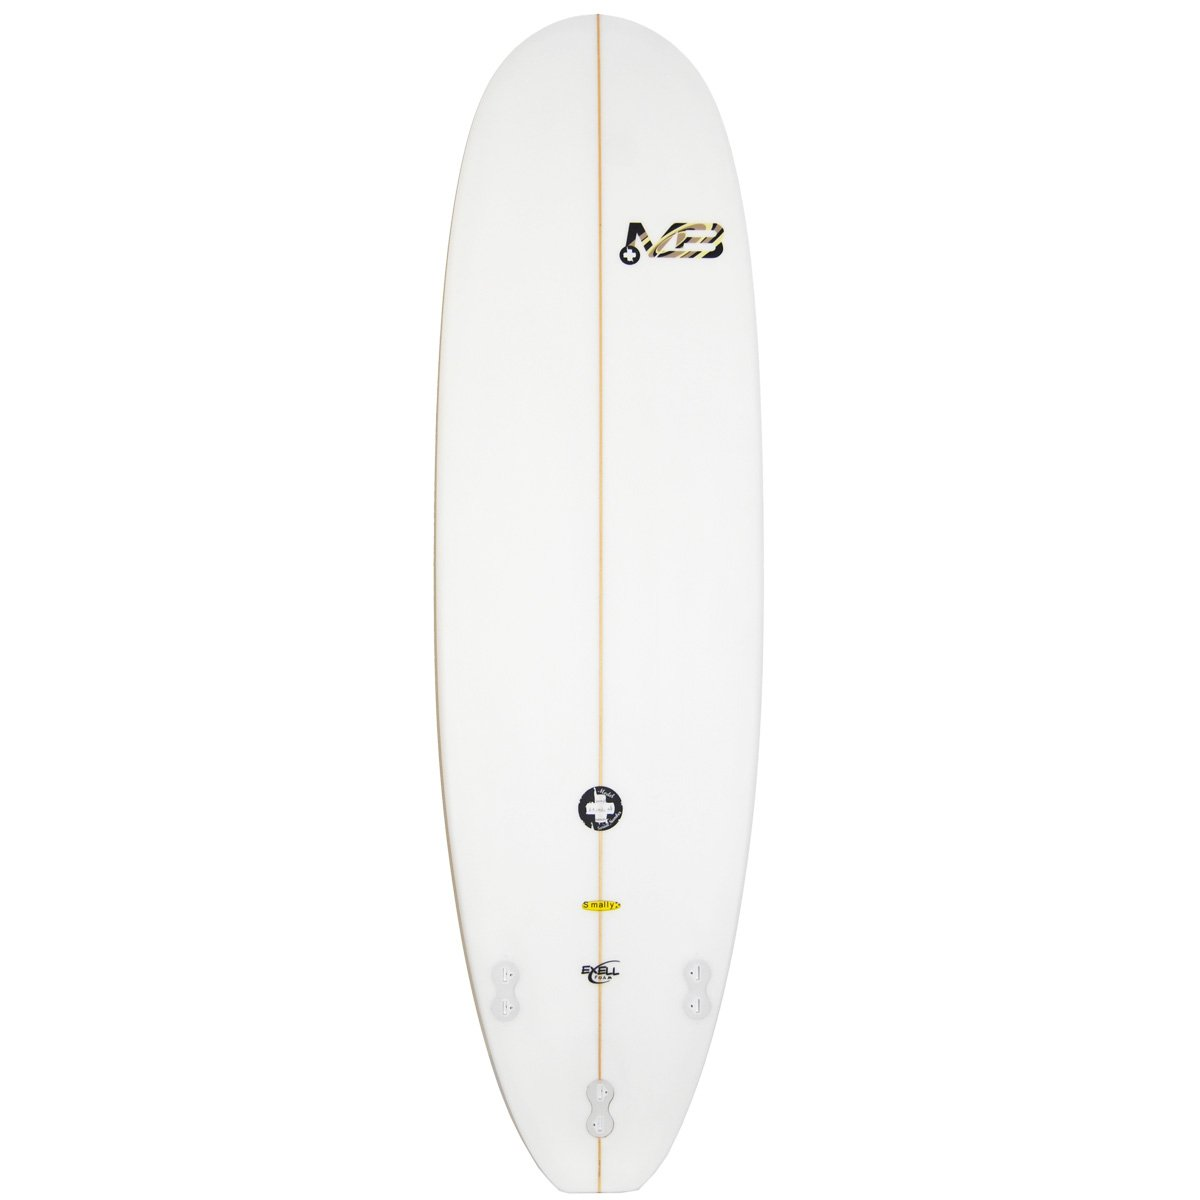 Tabla de surf Set 6-foot6 53.34 cm 7 /{16} 5.08 cm 9 /{16} manual Smally para surfista: Amazon.es: Deportes y aire libre